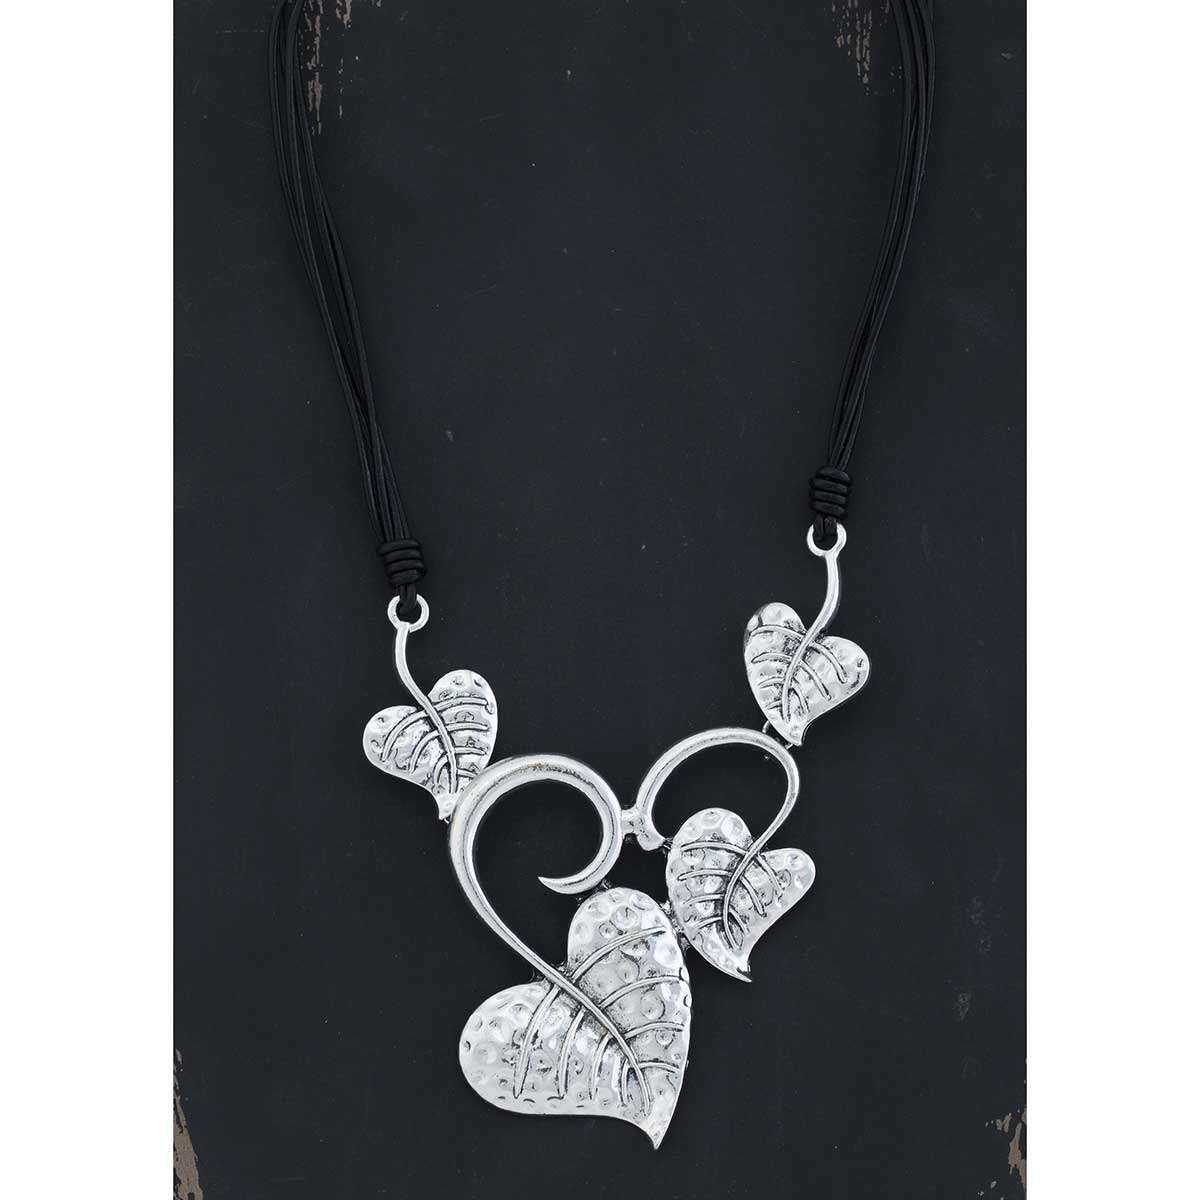 4 Heart Leaf on Black Cord Necklace 50sp